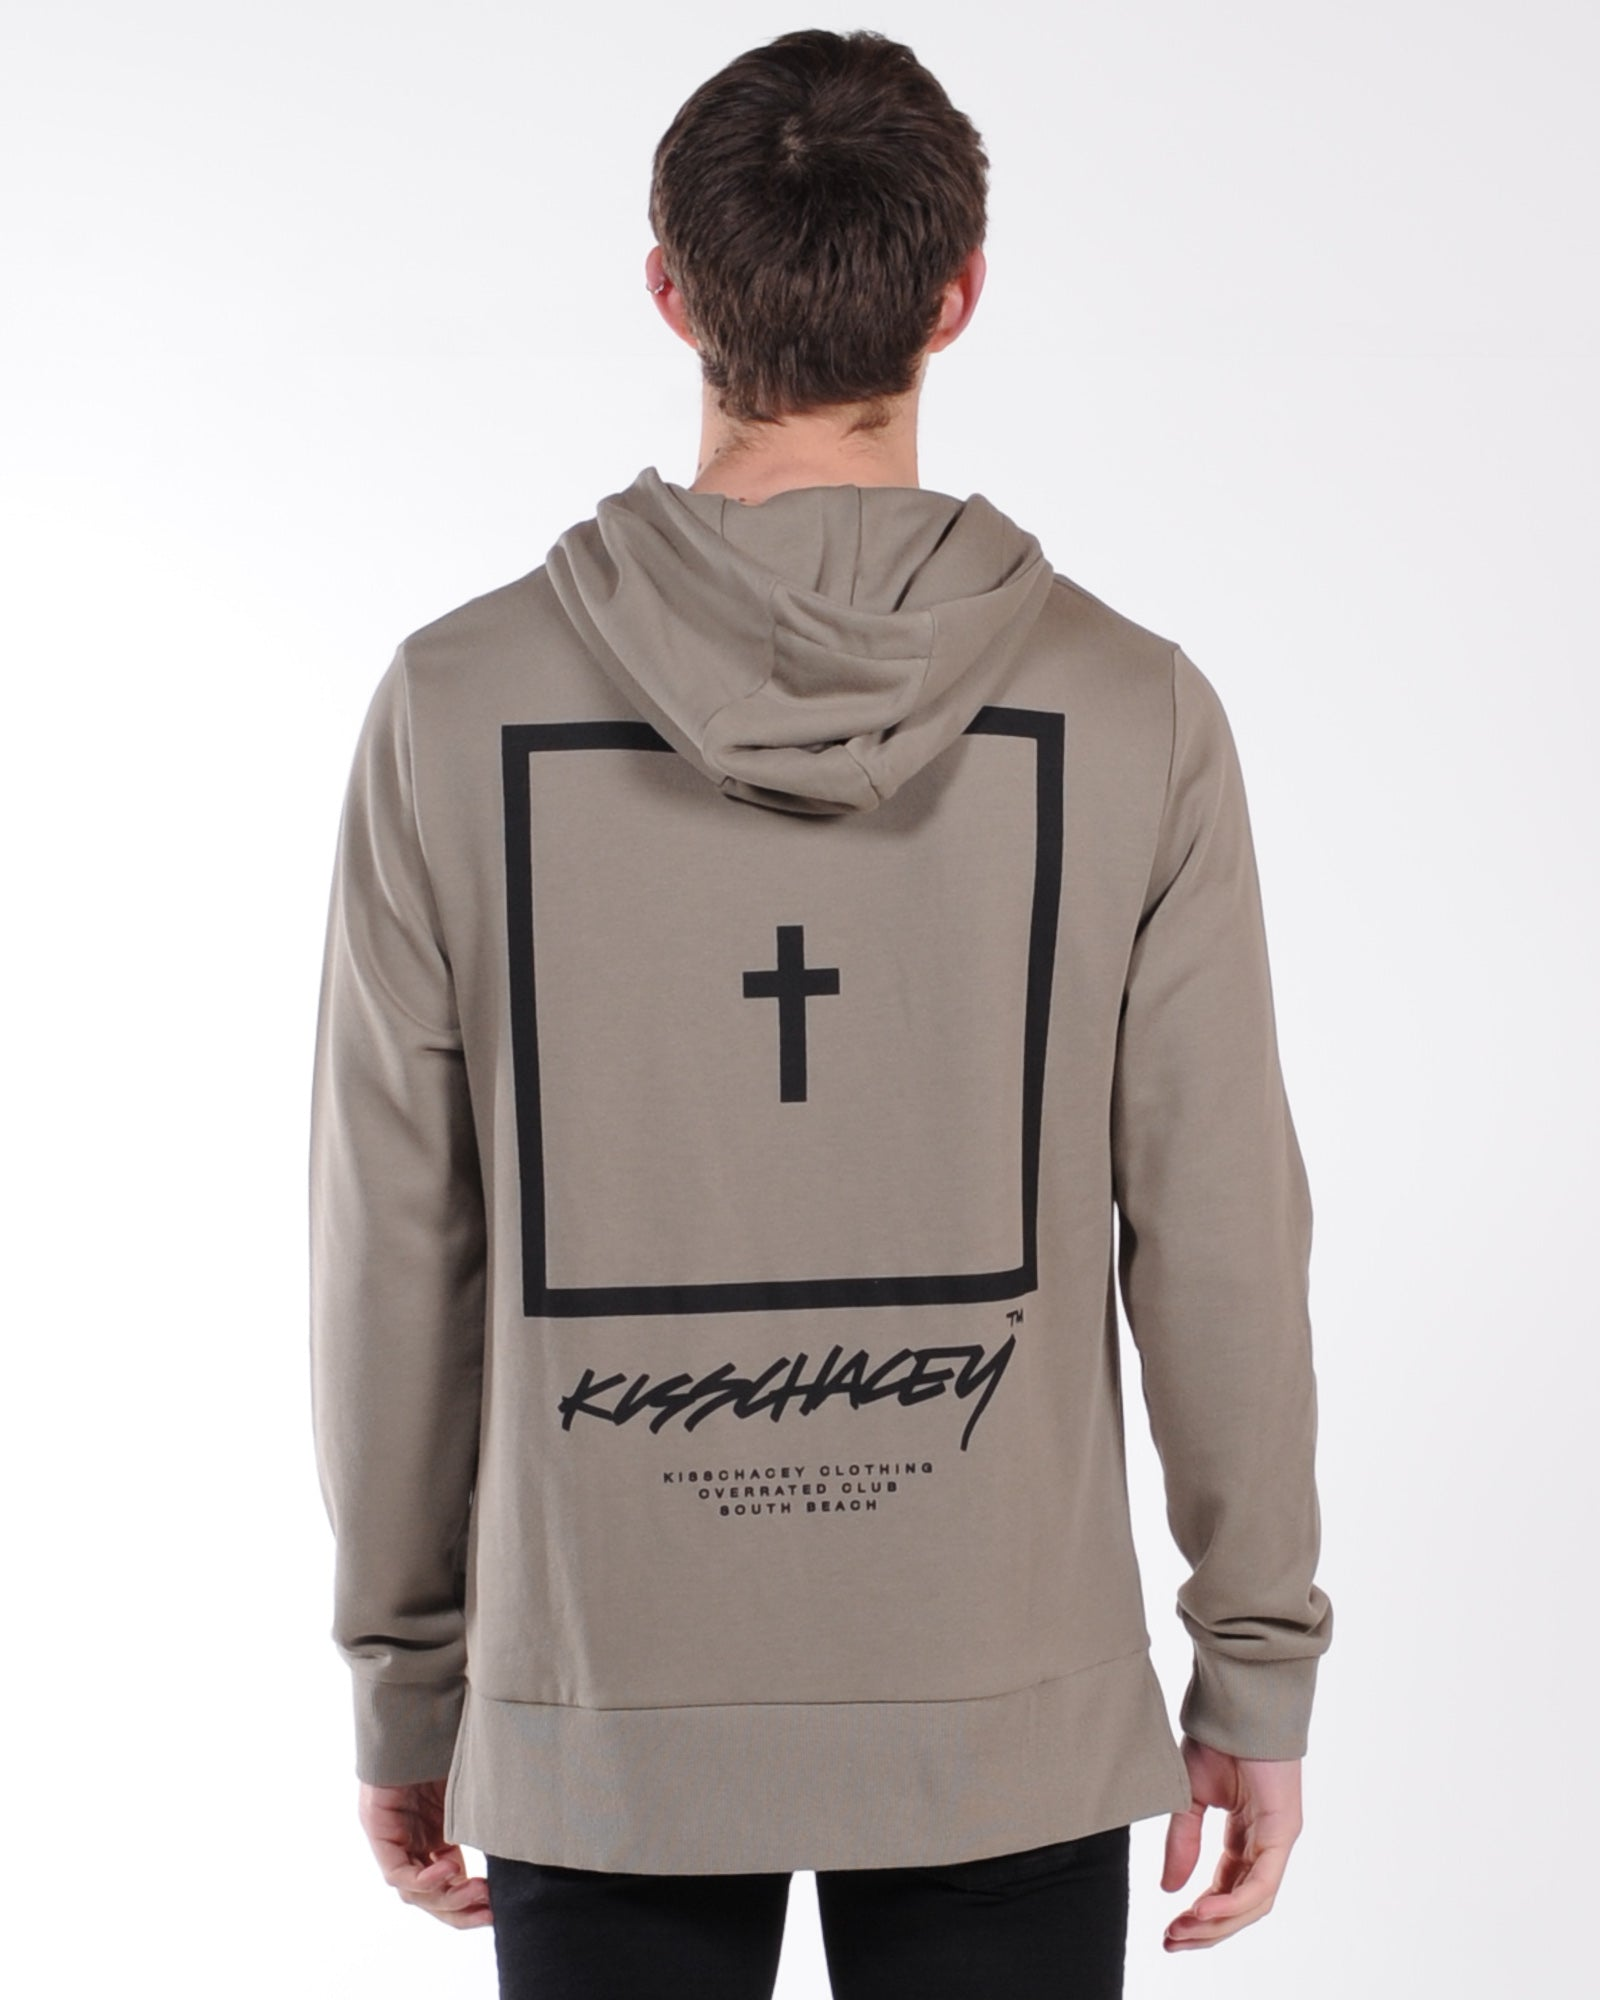 Kiss Chasey Synthetic Hooded Sweat - Khaki